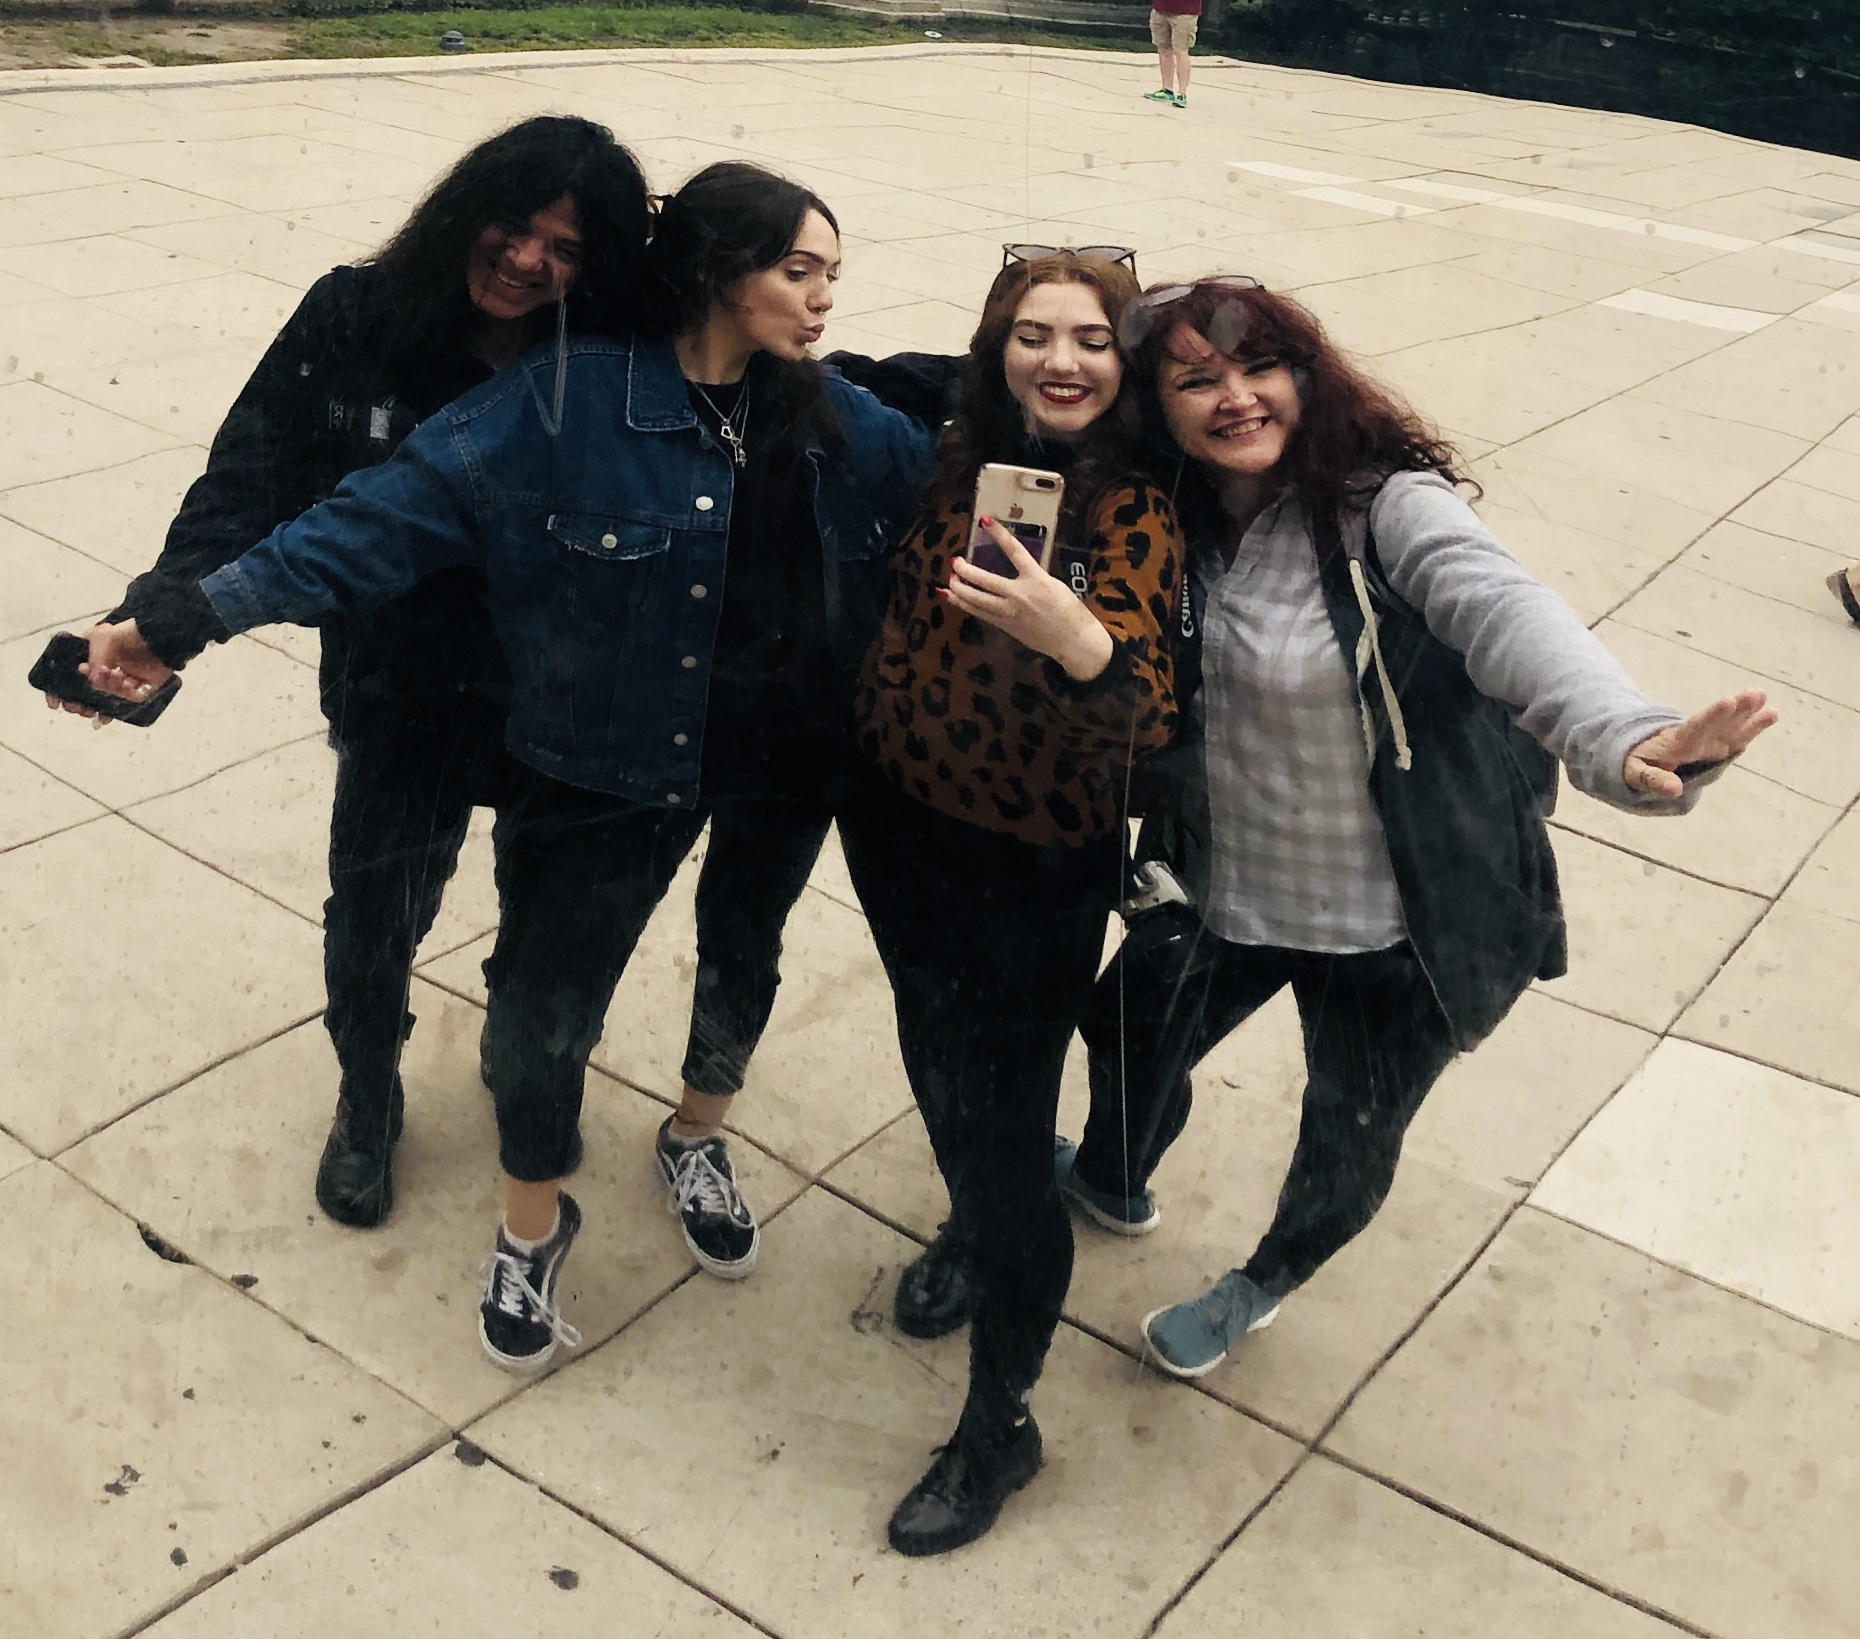 My beloved ladies and I at 'the bean' in Chicago !